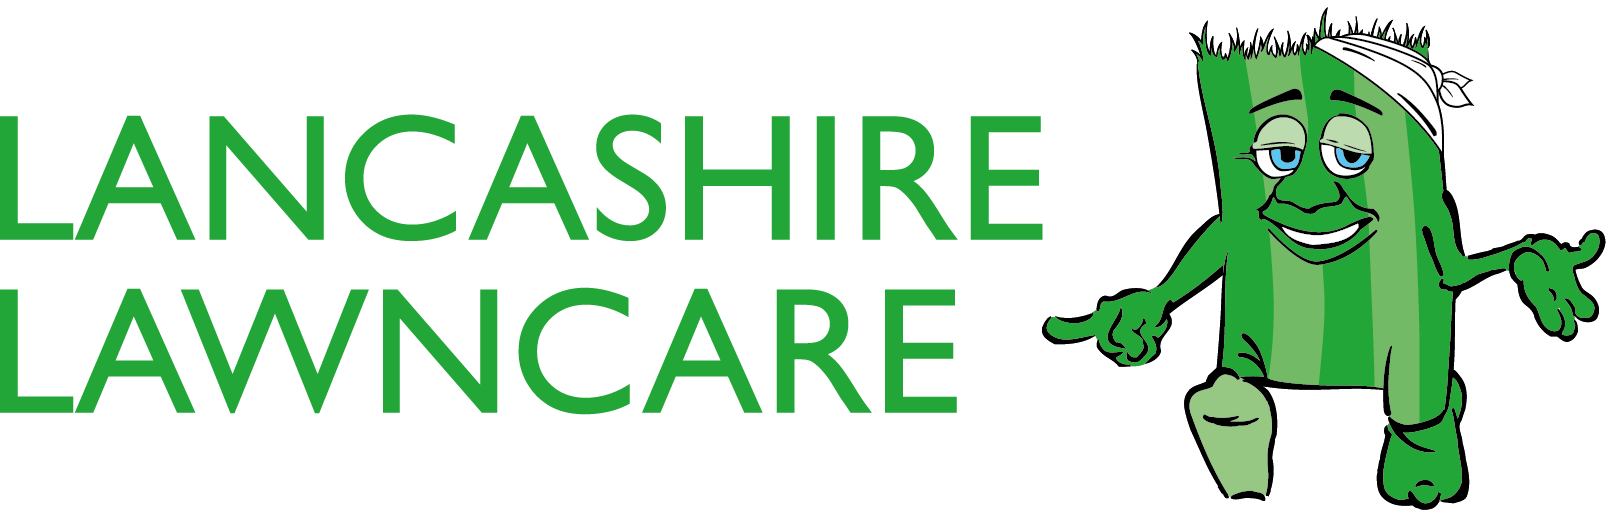 Lancashire Lawncare